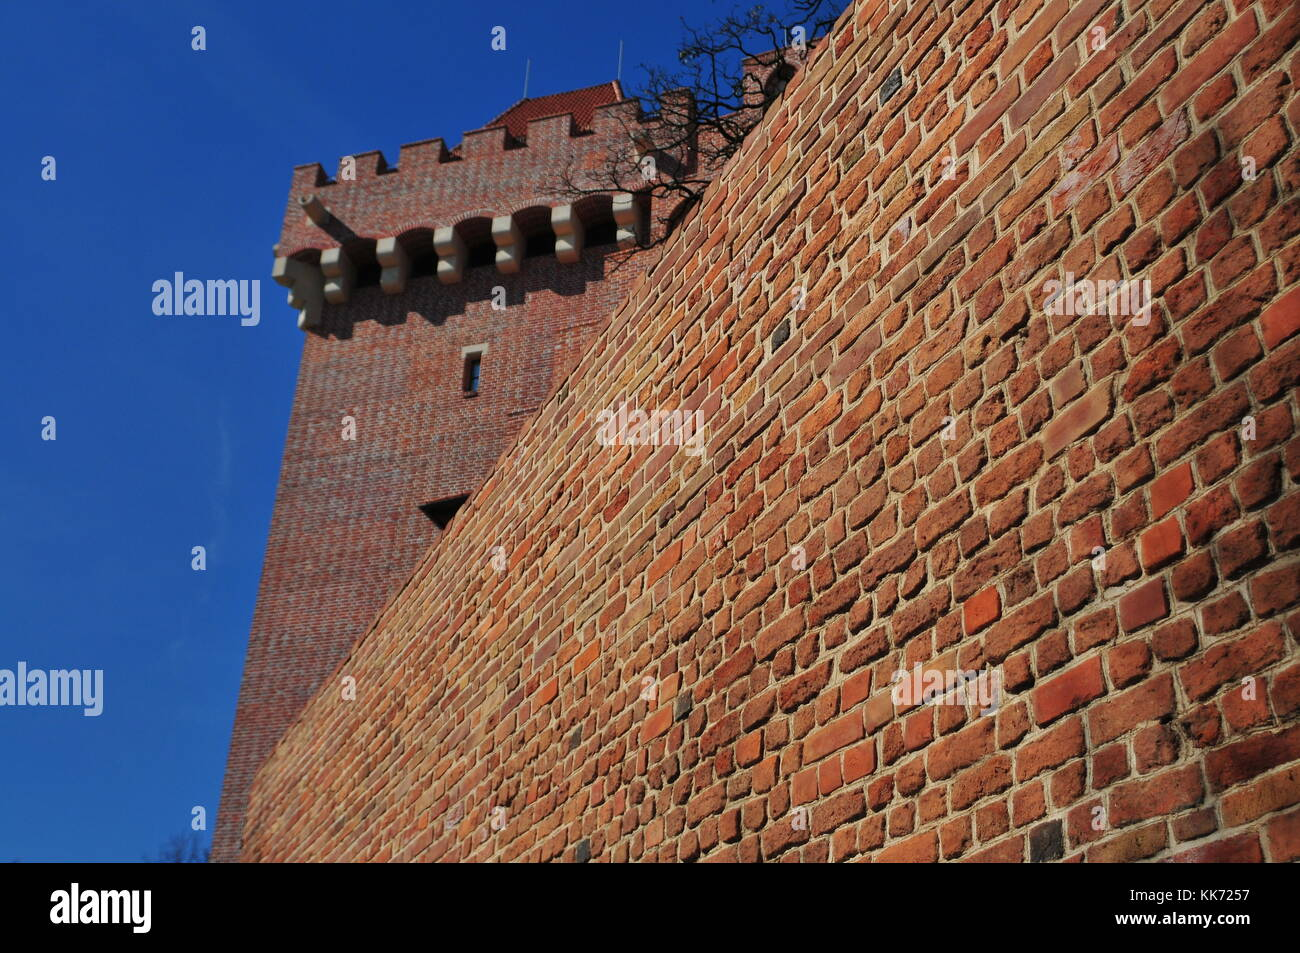 poznan royal castle poland 2016 viewof side brick wall and tower